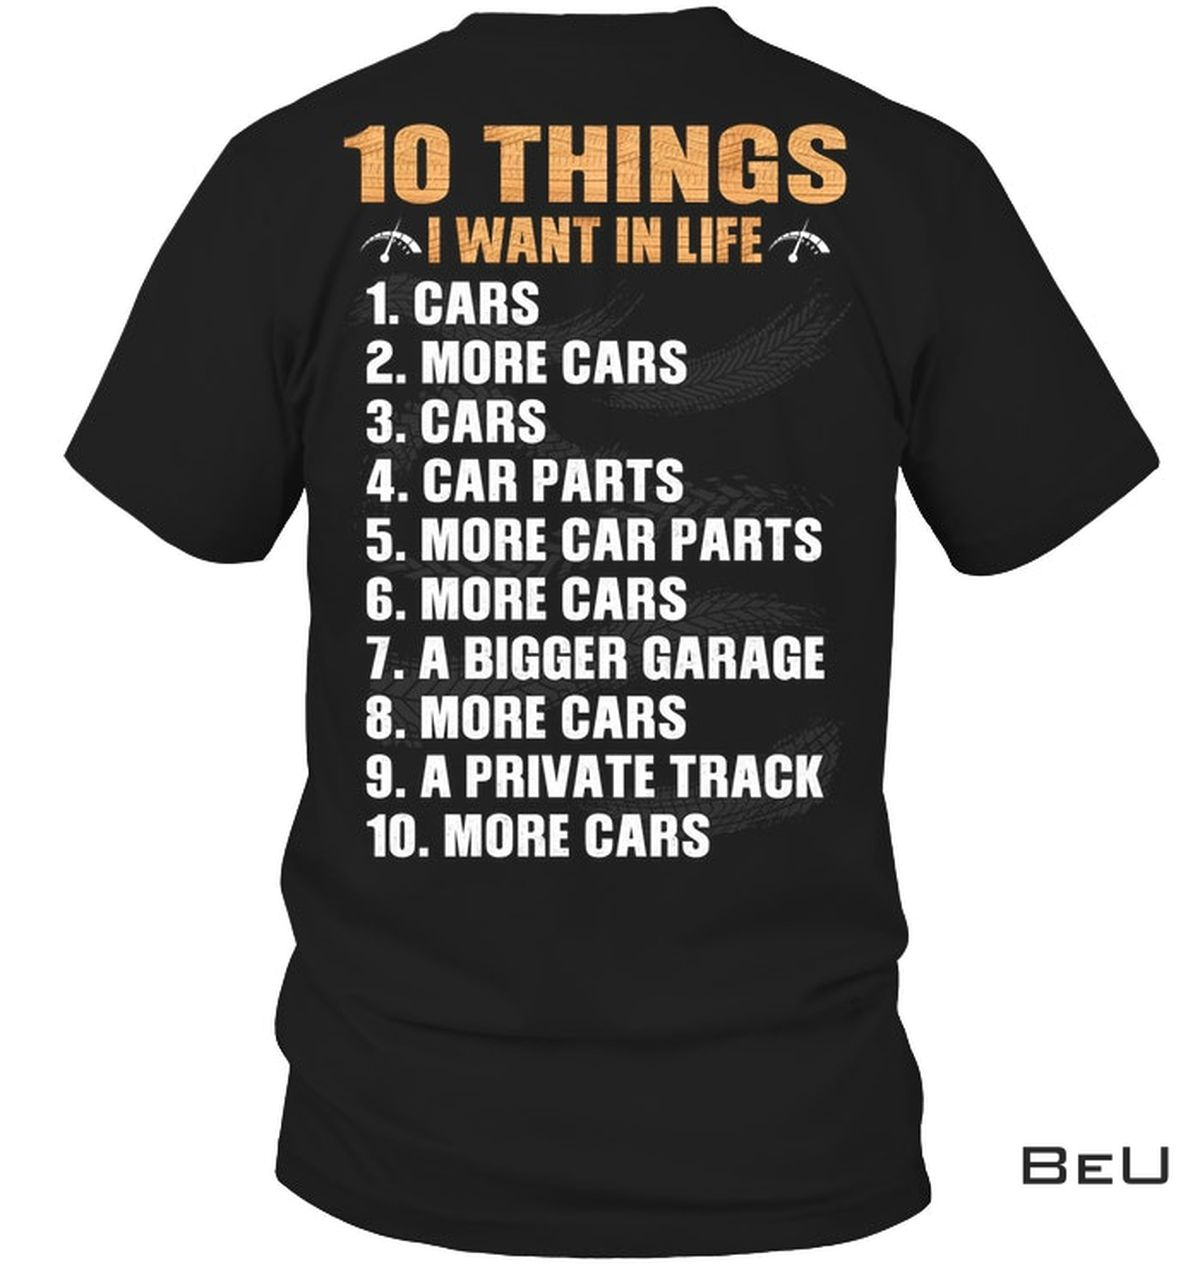 10 Things I Want In Life Shirt